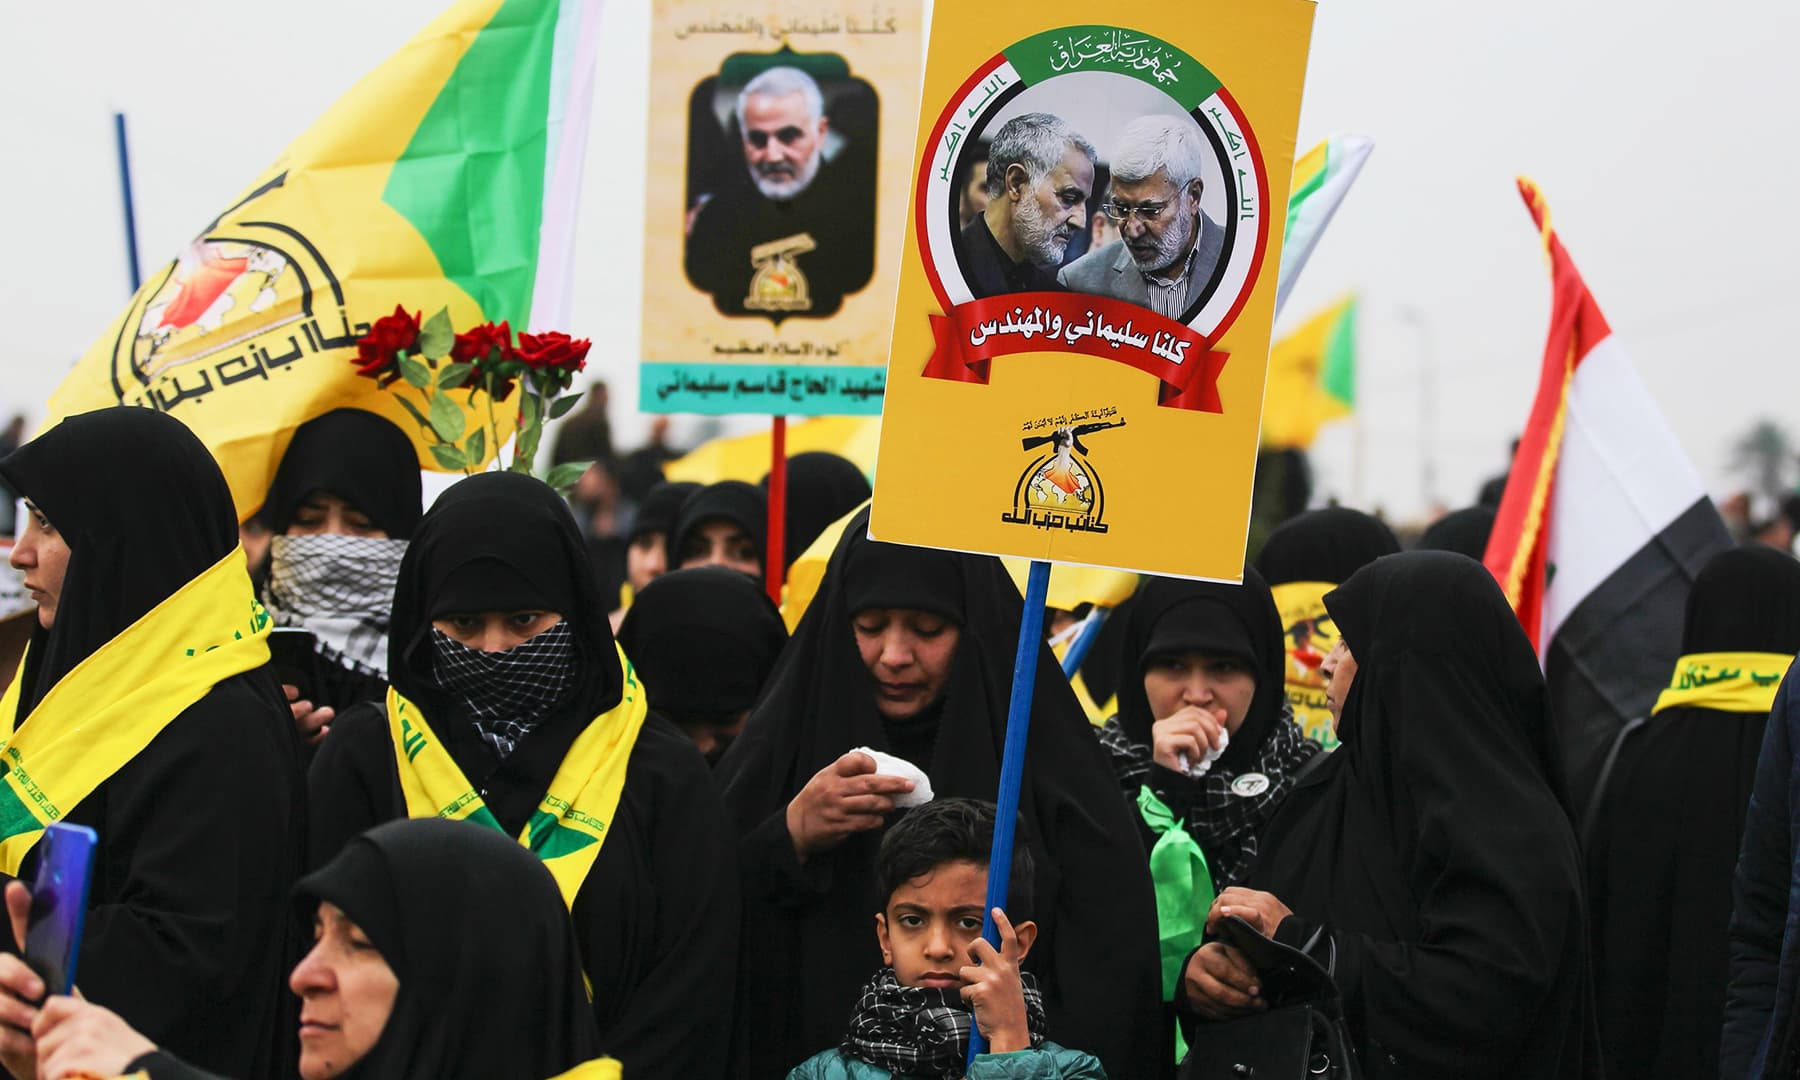 Supporters of the Hashed al-Shaabi paramilitary force and Iraq's Hezbollah brigades attend the funeral, in Baghdad's district of al-Jadriya, in Baghdad's high-security Green Zone, on January 4. — AFP